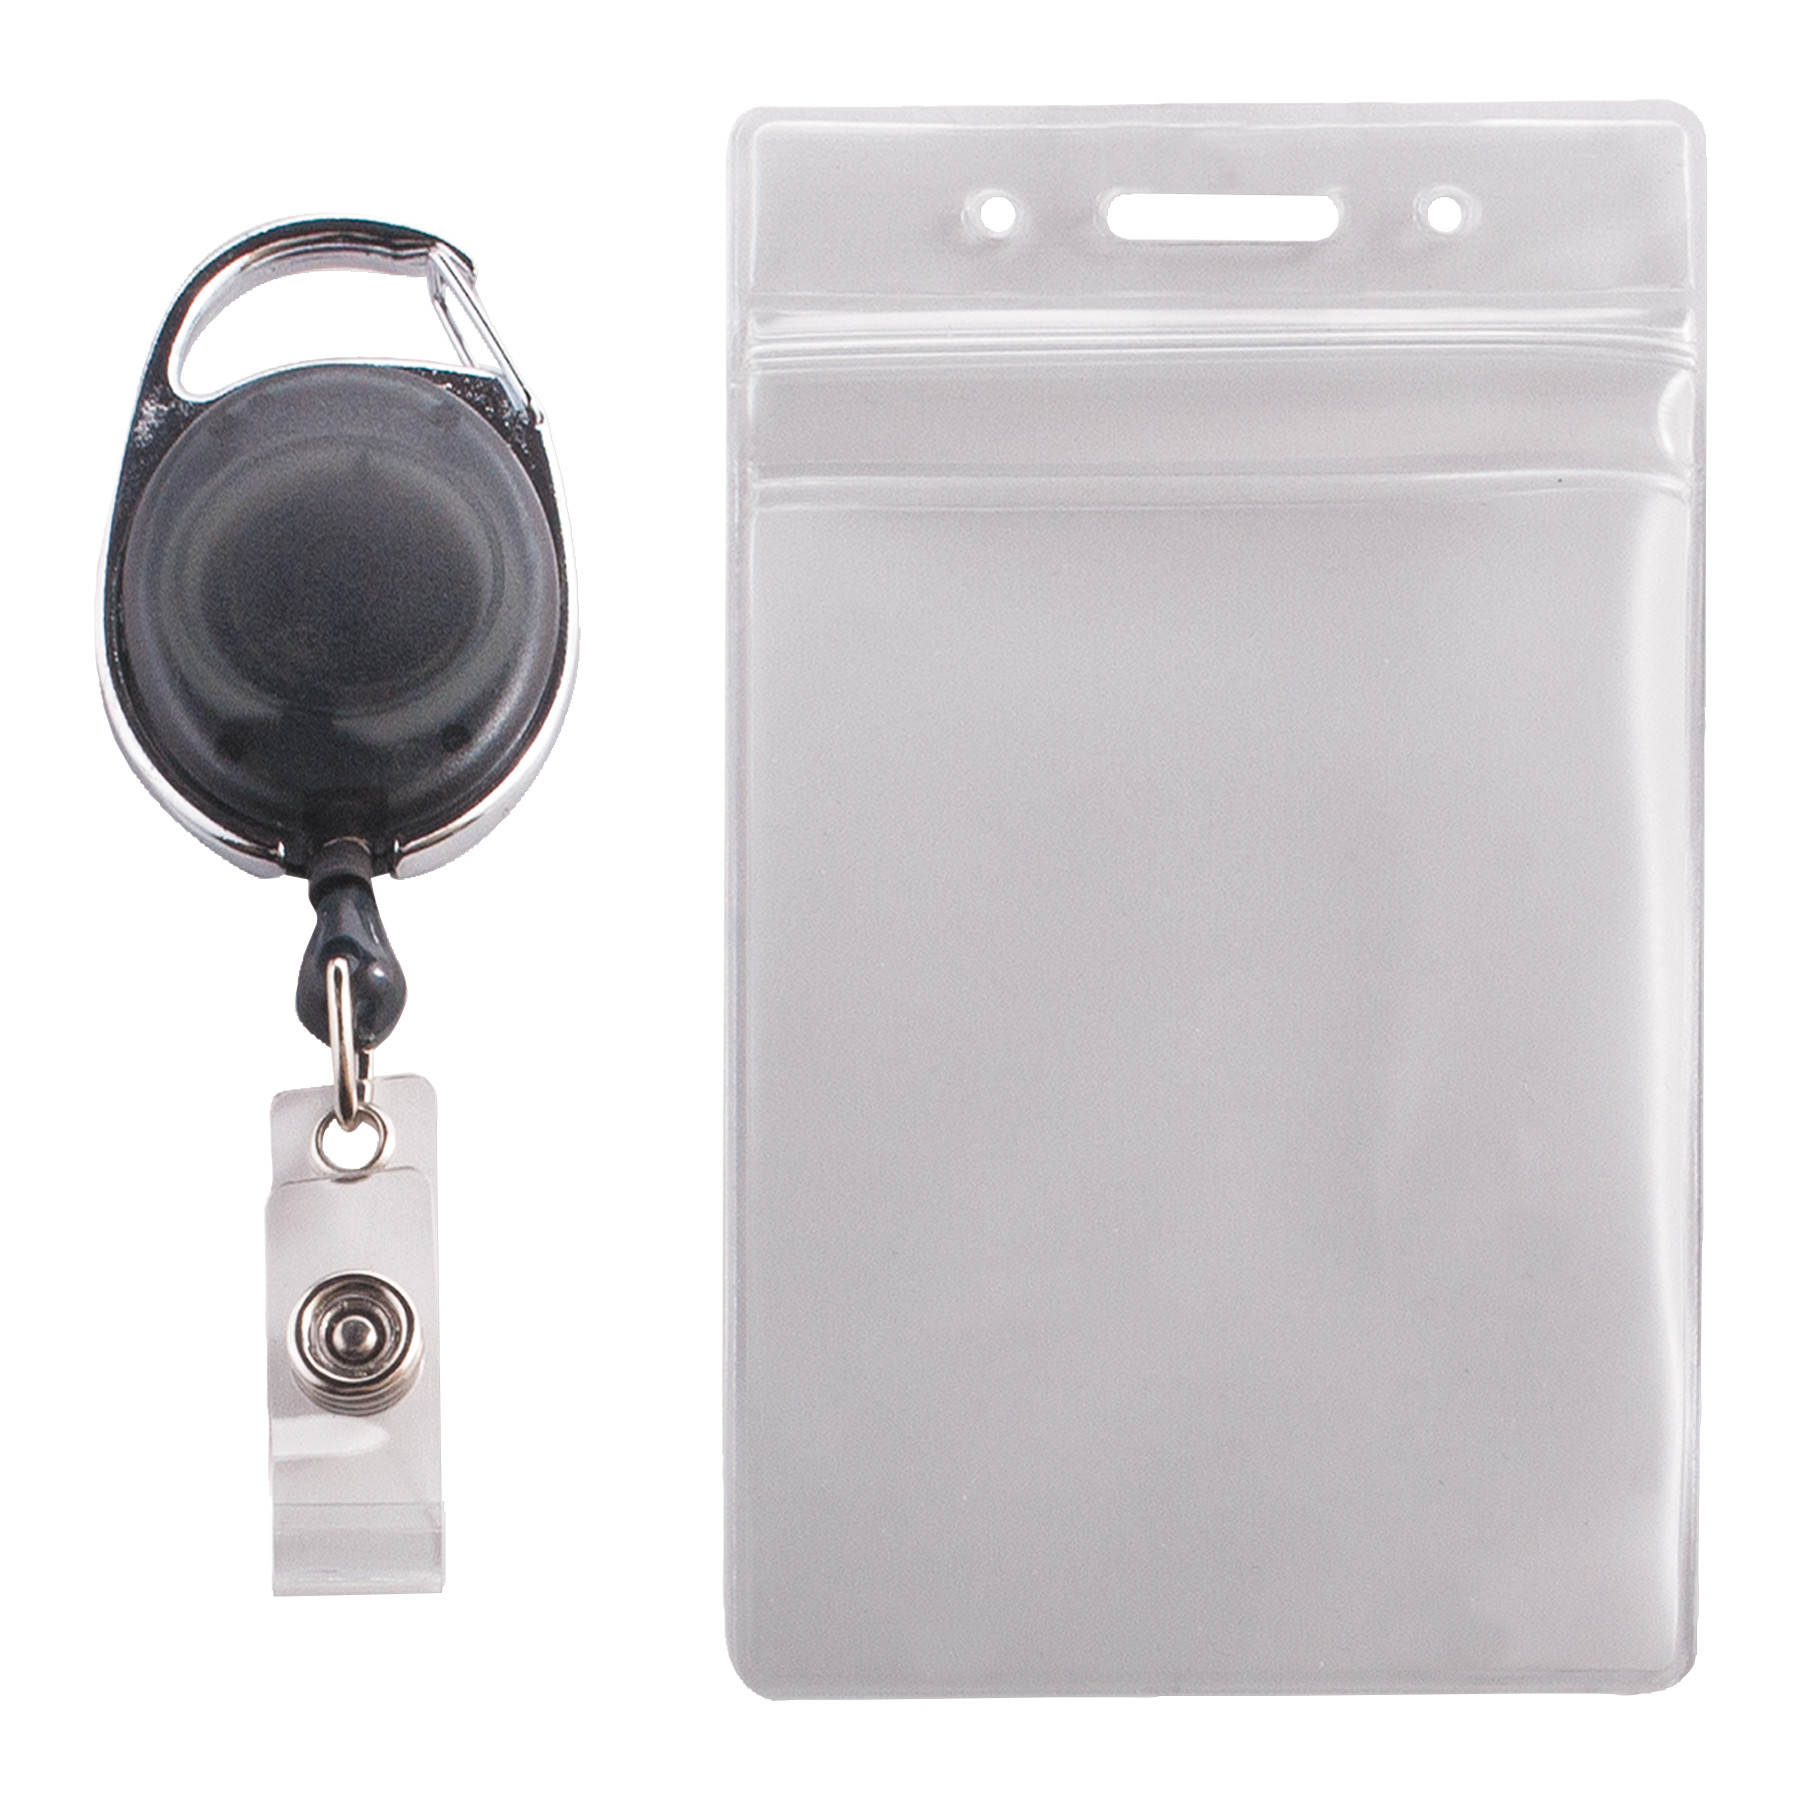 Advantus Resealable ID Badge Holder, Cord Reel, Vertical, 2 5 8 x 3 3 4, Clear, 10 Pack by ADVANTUS CORPORATION